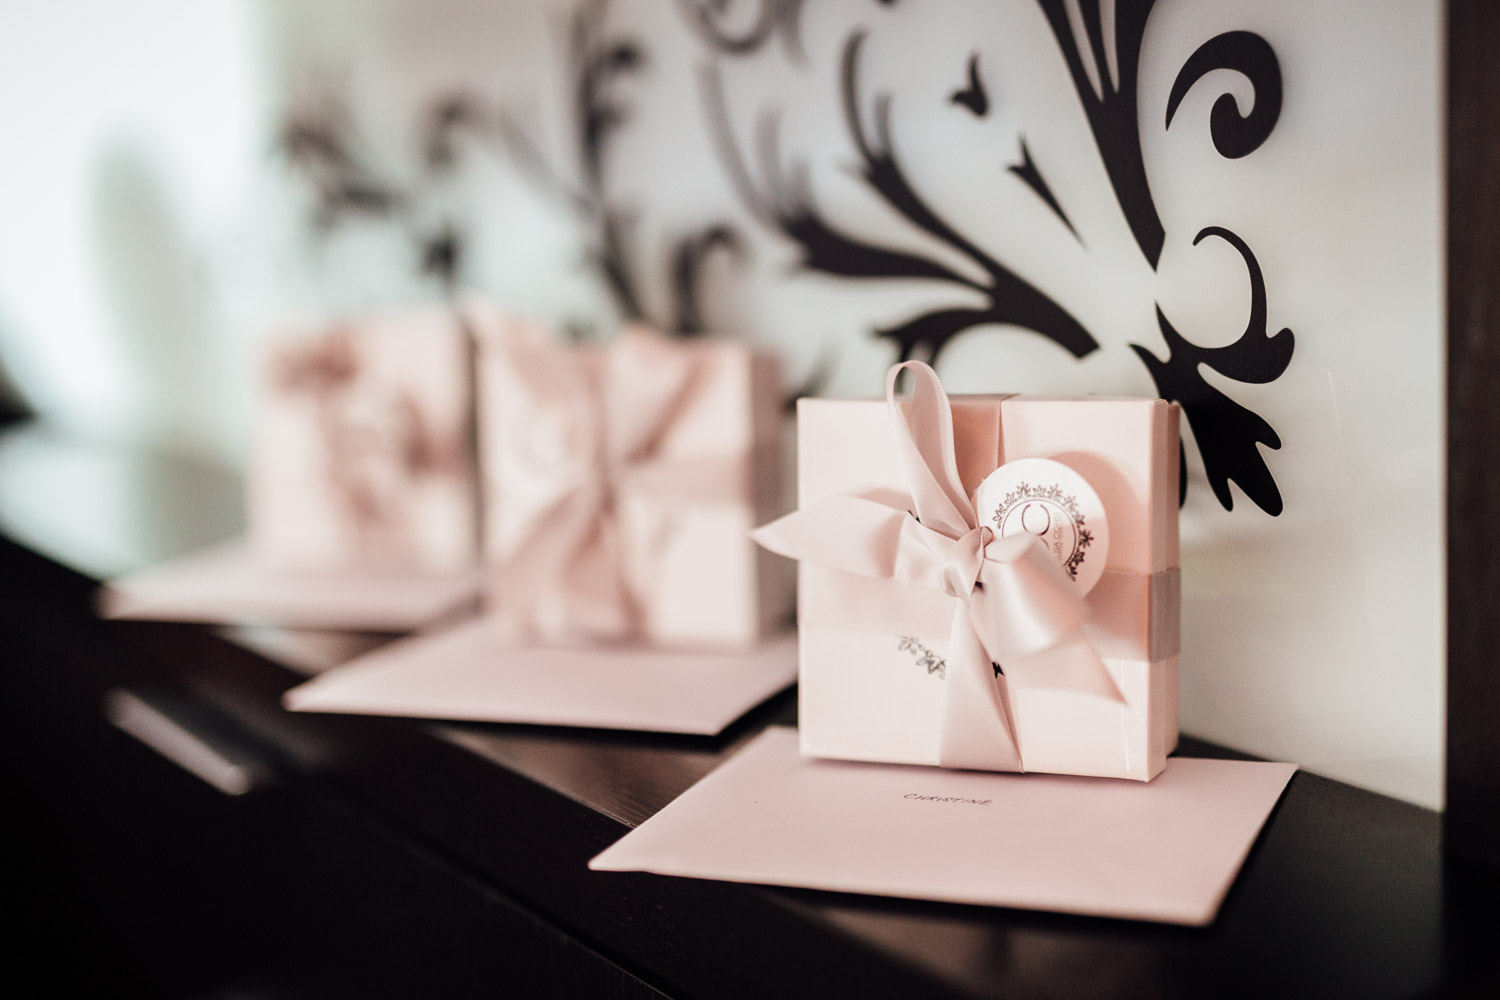 bridesmaid gifts opus hotel in yaletown vancouver bc wedding photography